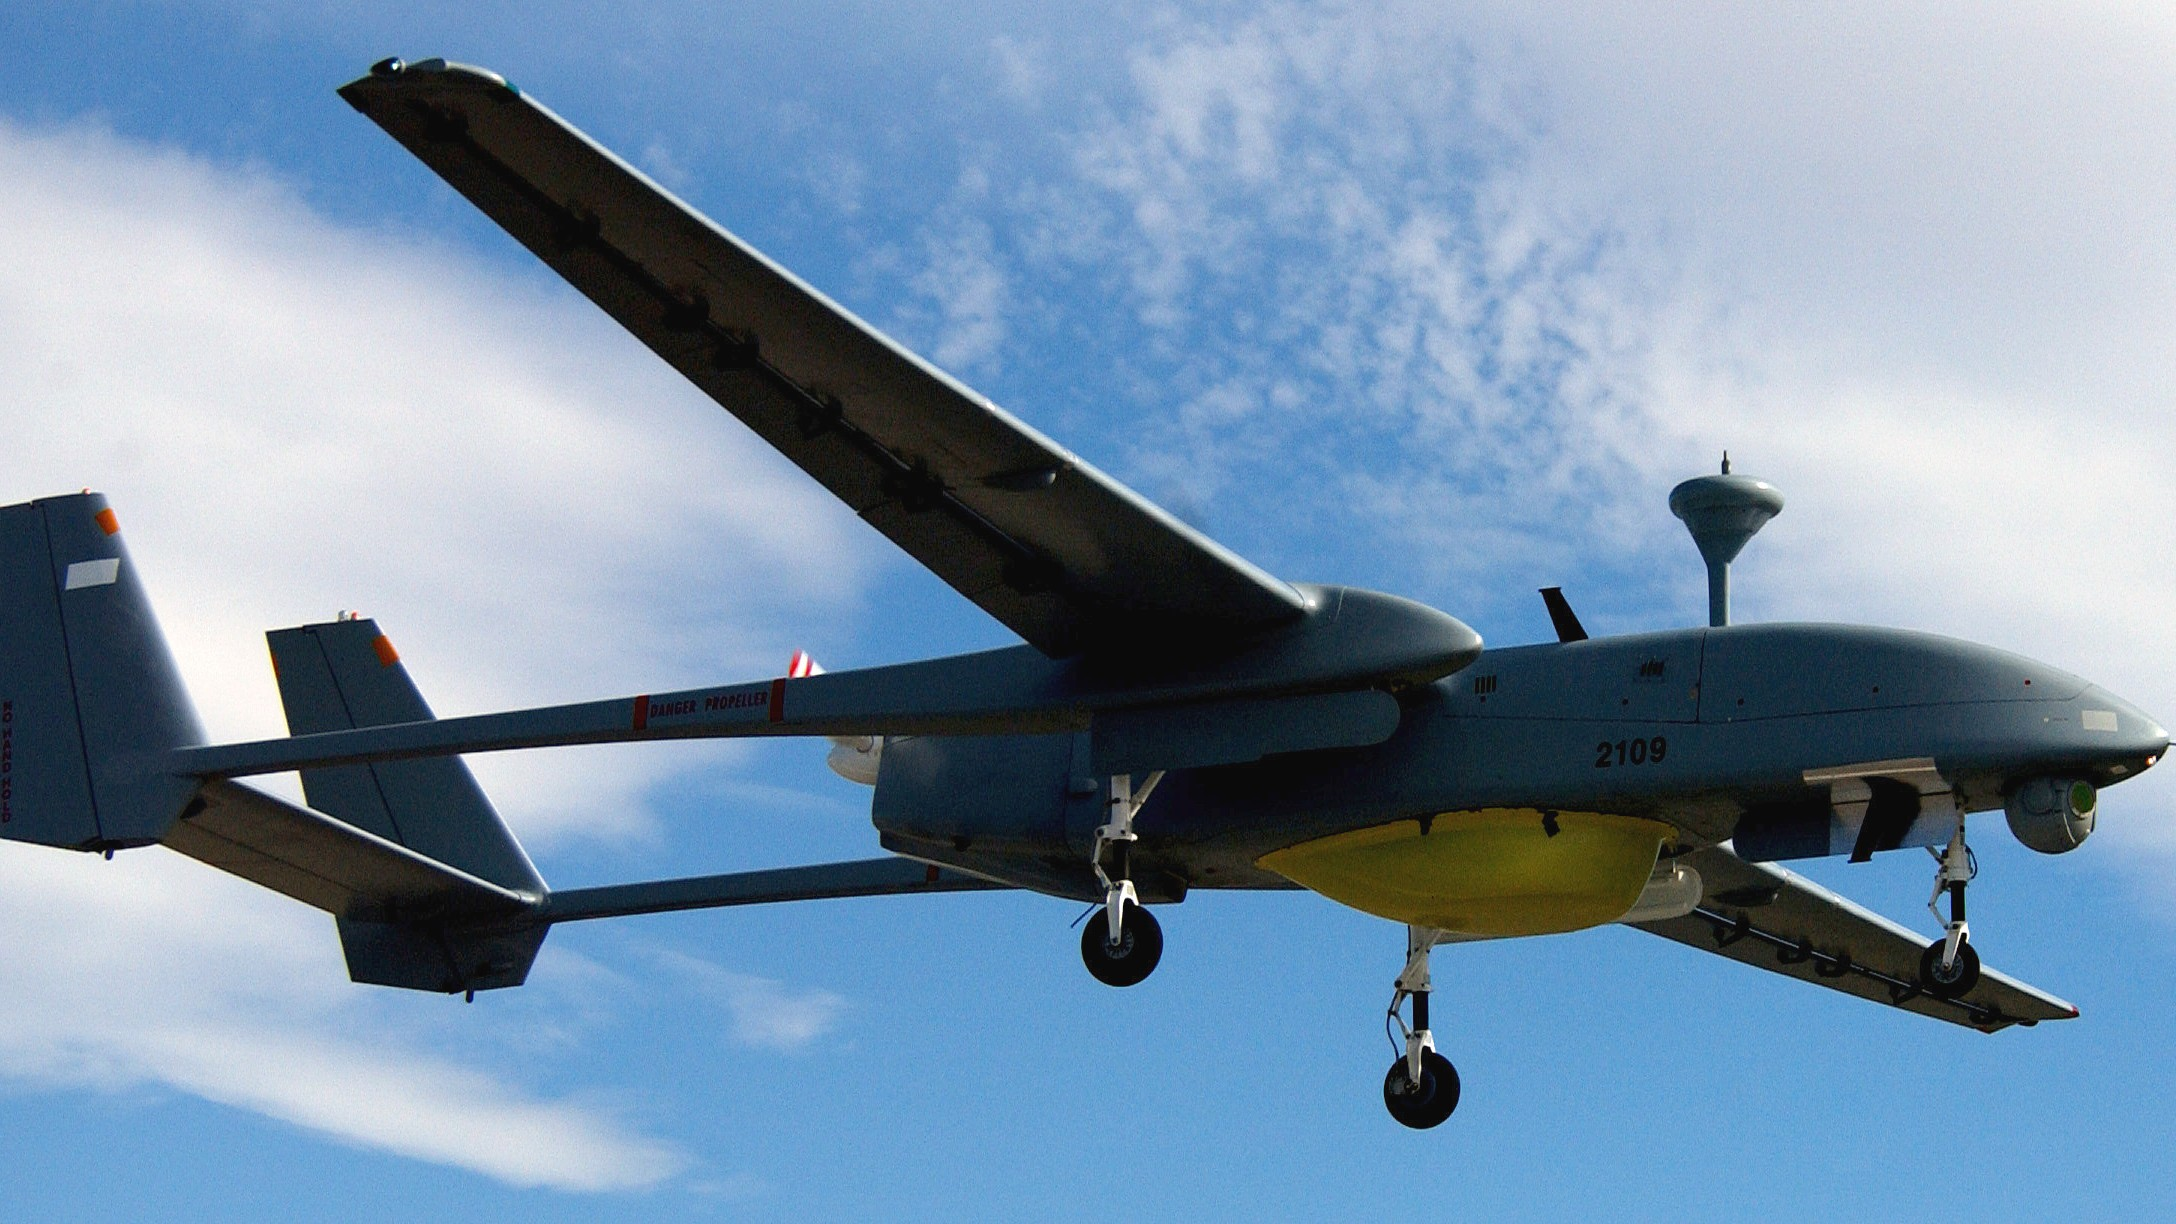 An Israeli Made Heron Surveillance Drone Similar To The Model Canada Flew In Afghanistan Image Wikimedia Commons